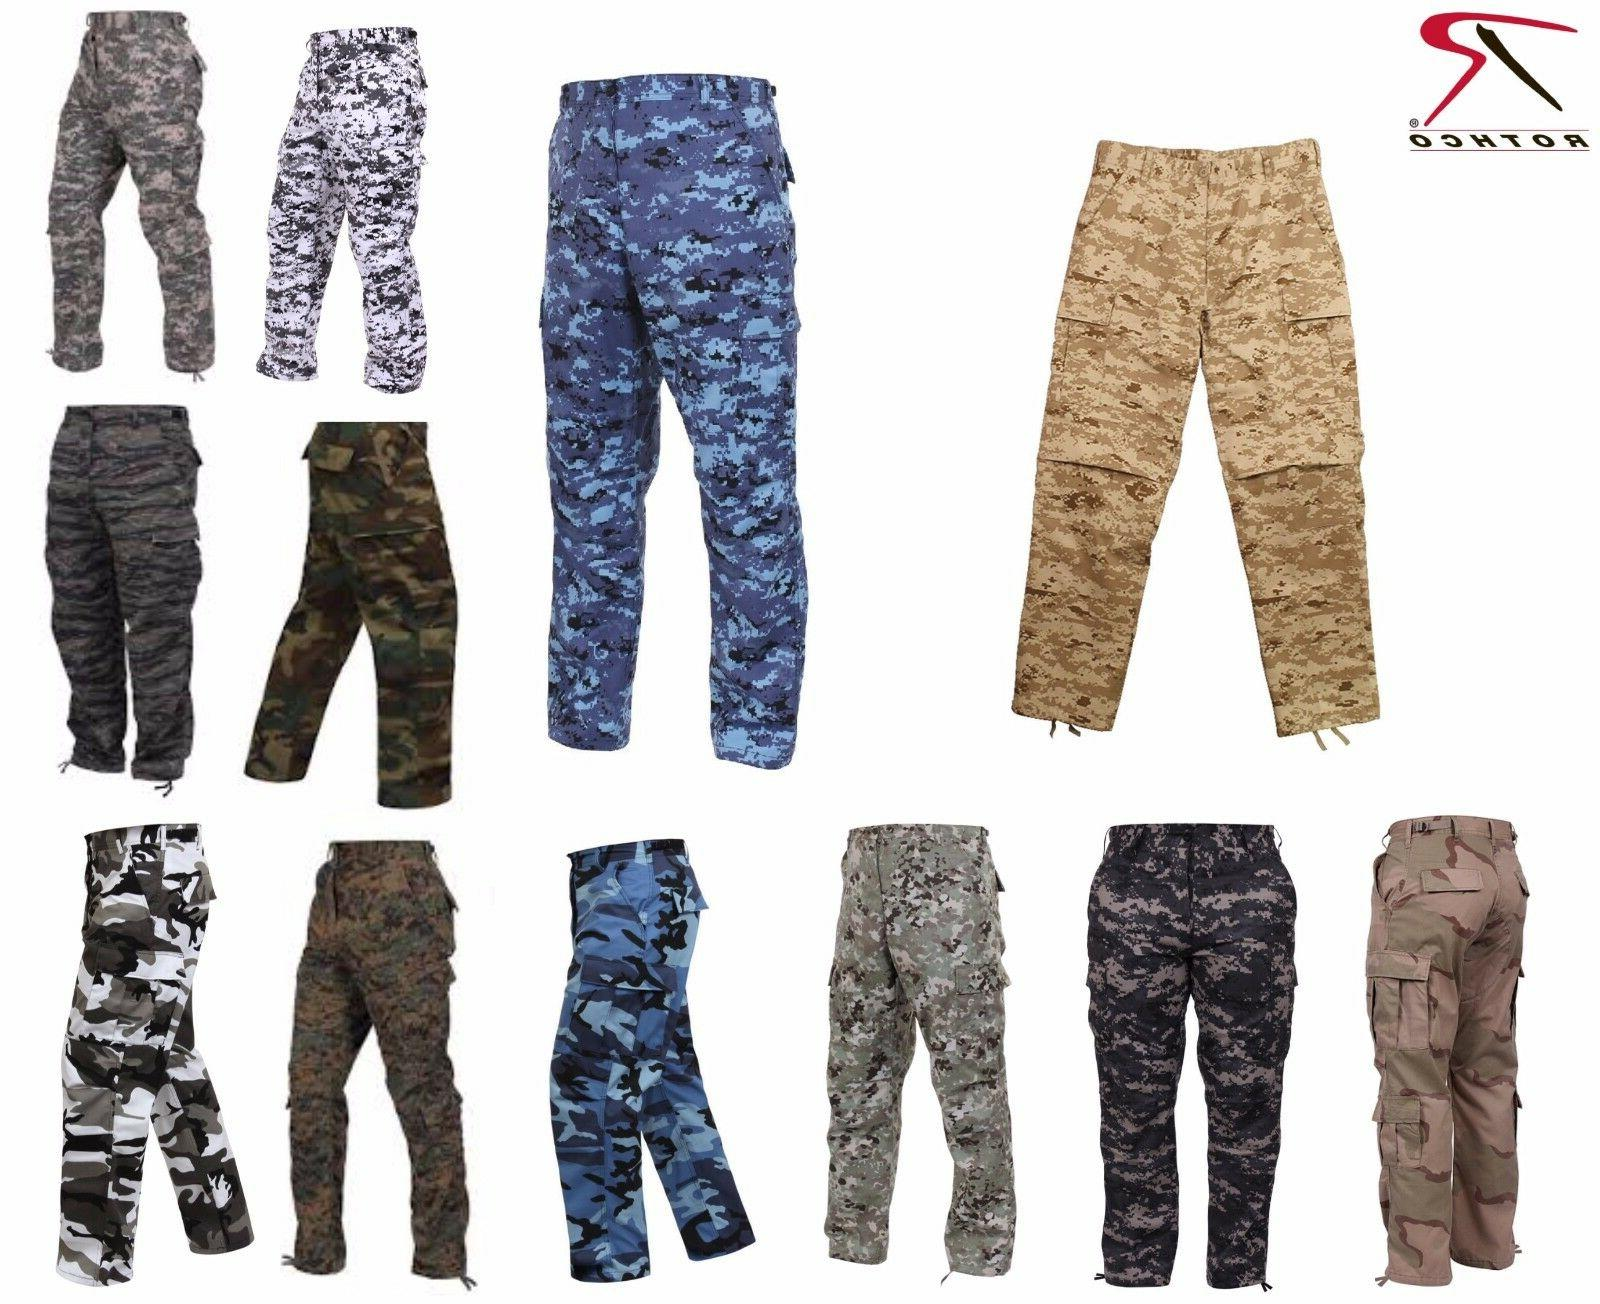 Rothco Military Camouflage BDU Cargo Army Fatigue Tactical C